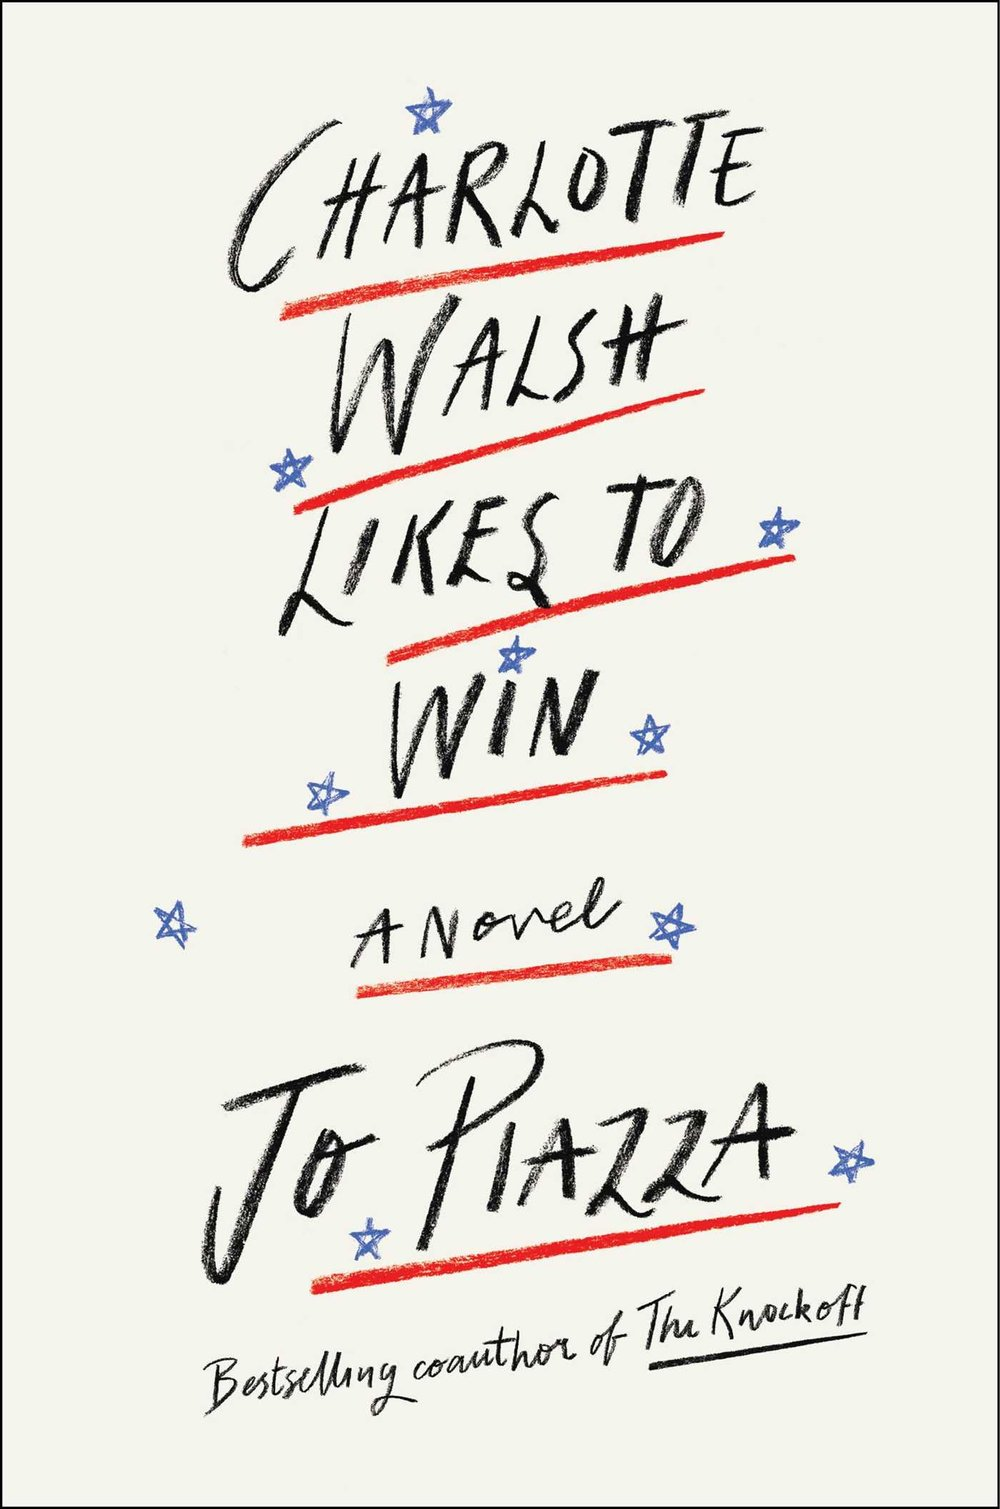 charlotte walsh likes to win by jo piazza copy.jpg